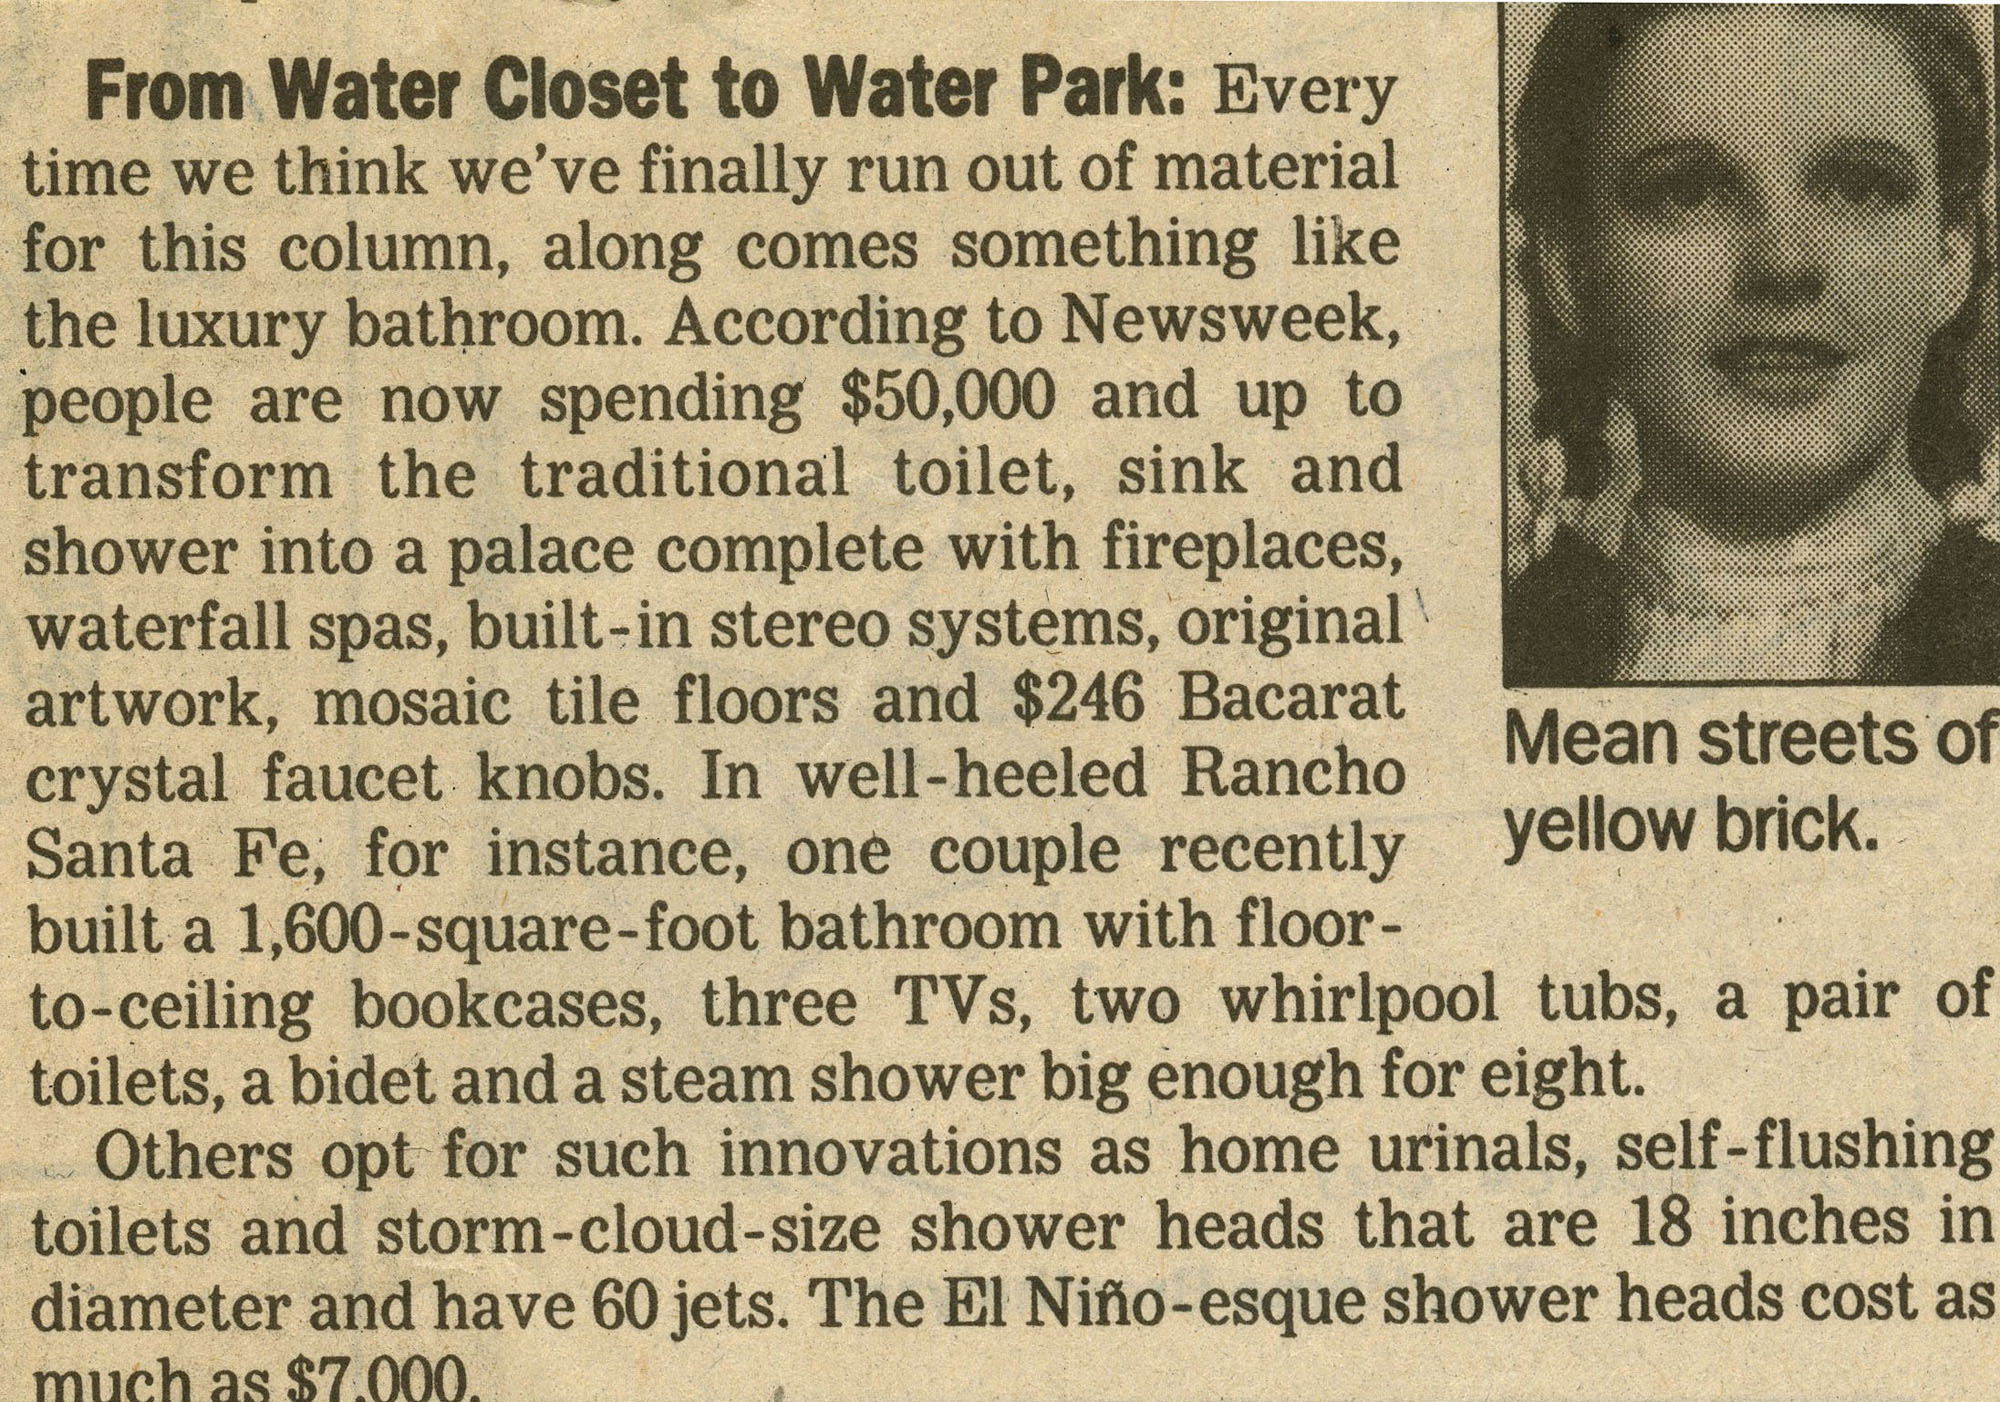 june1998- From Water Closet to Water Park